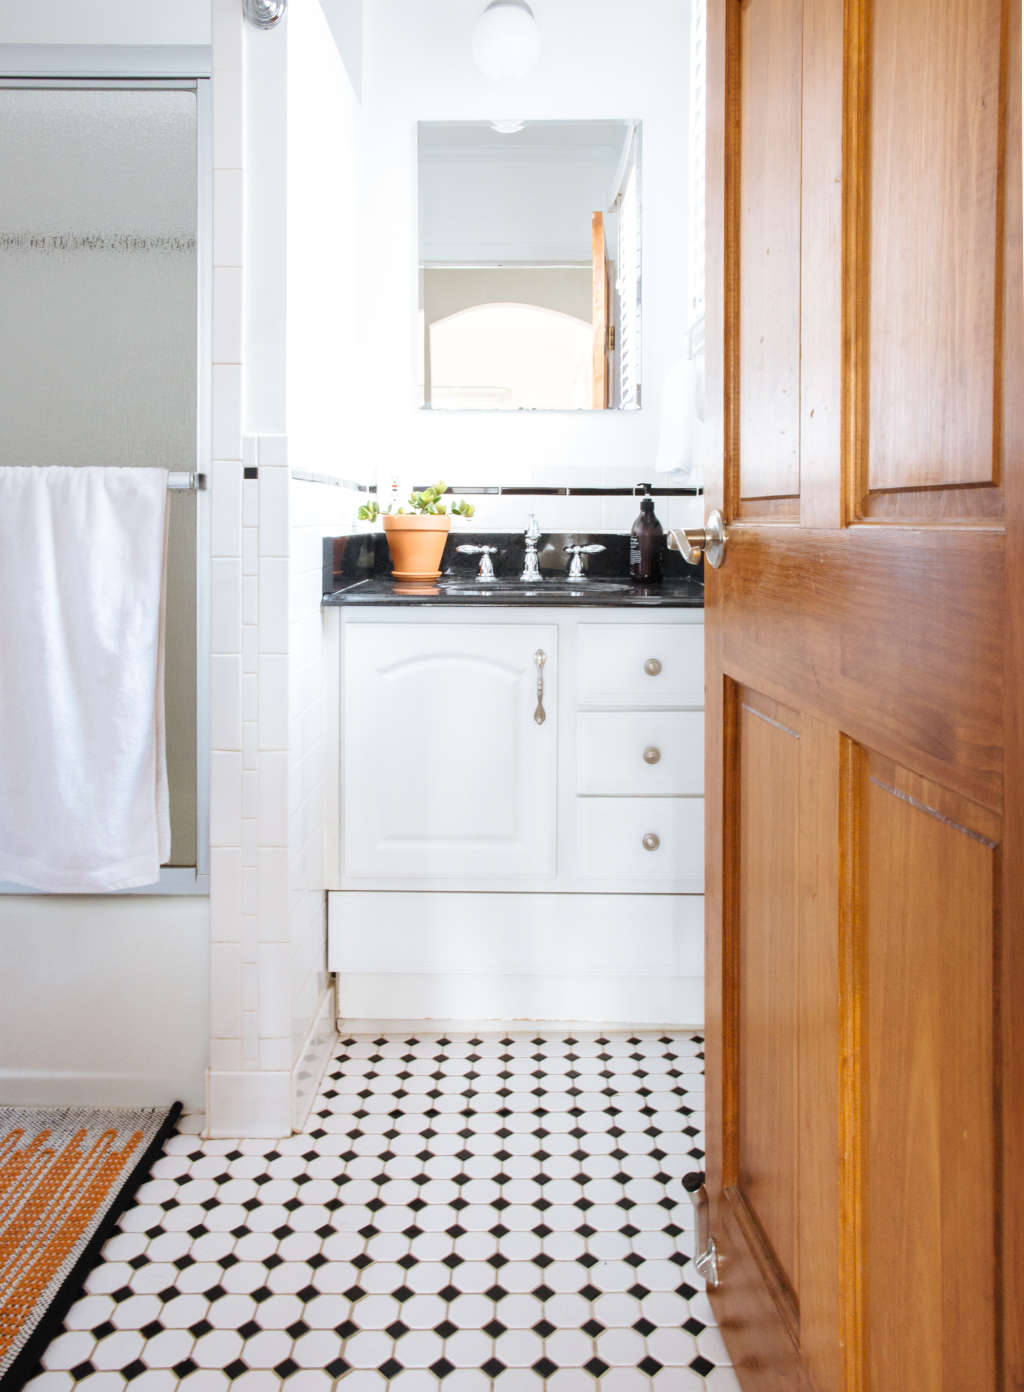 5 Bathroom Features That Are Falling Out of Favor